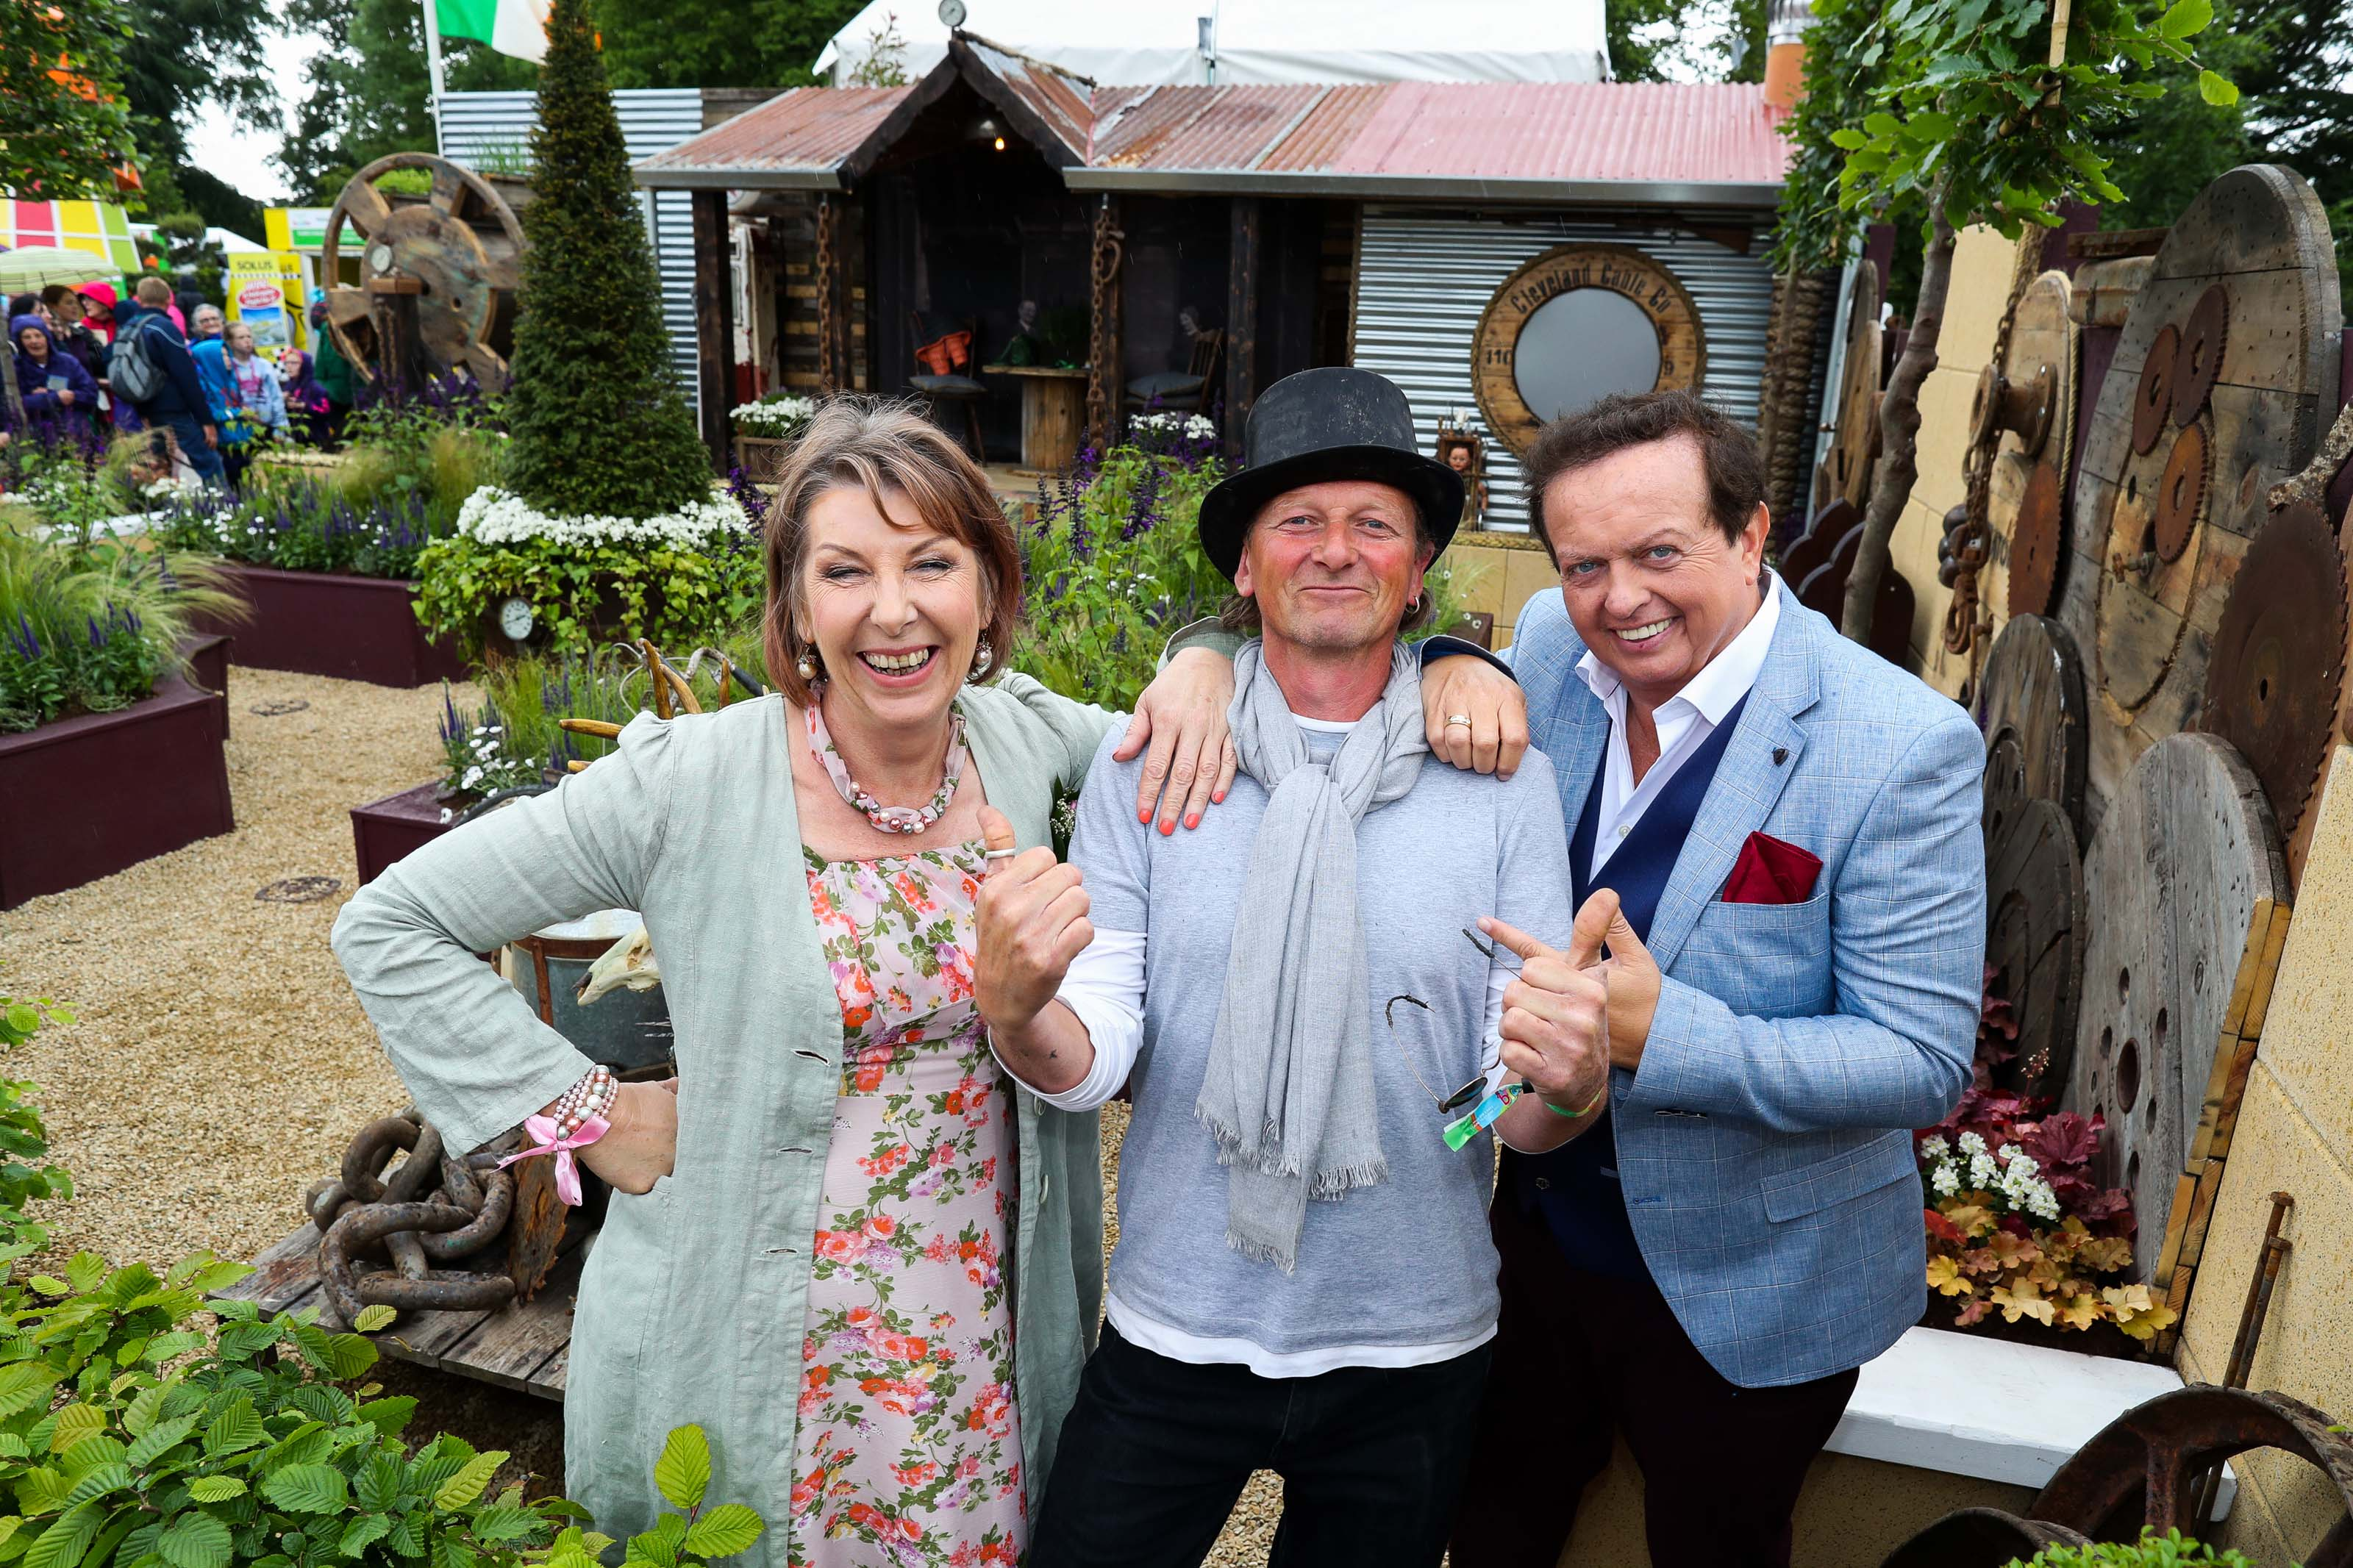 des kingston scoops silver medal at bloom as he is announced the